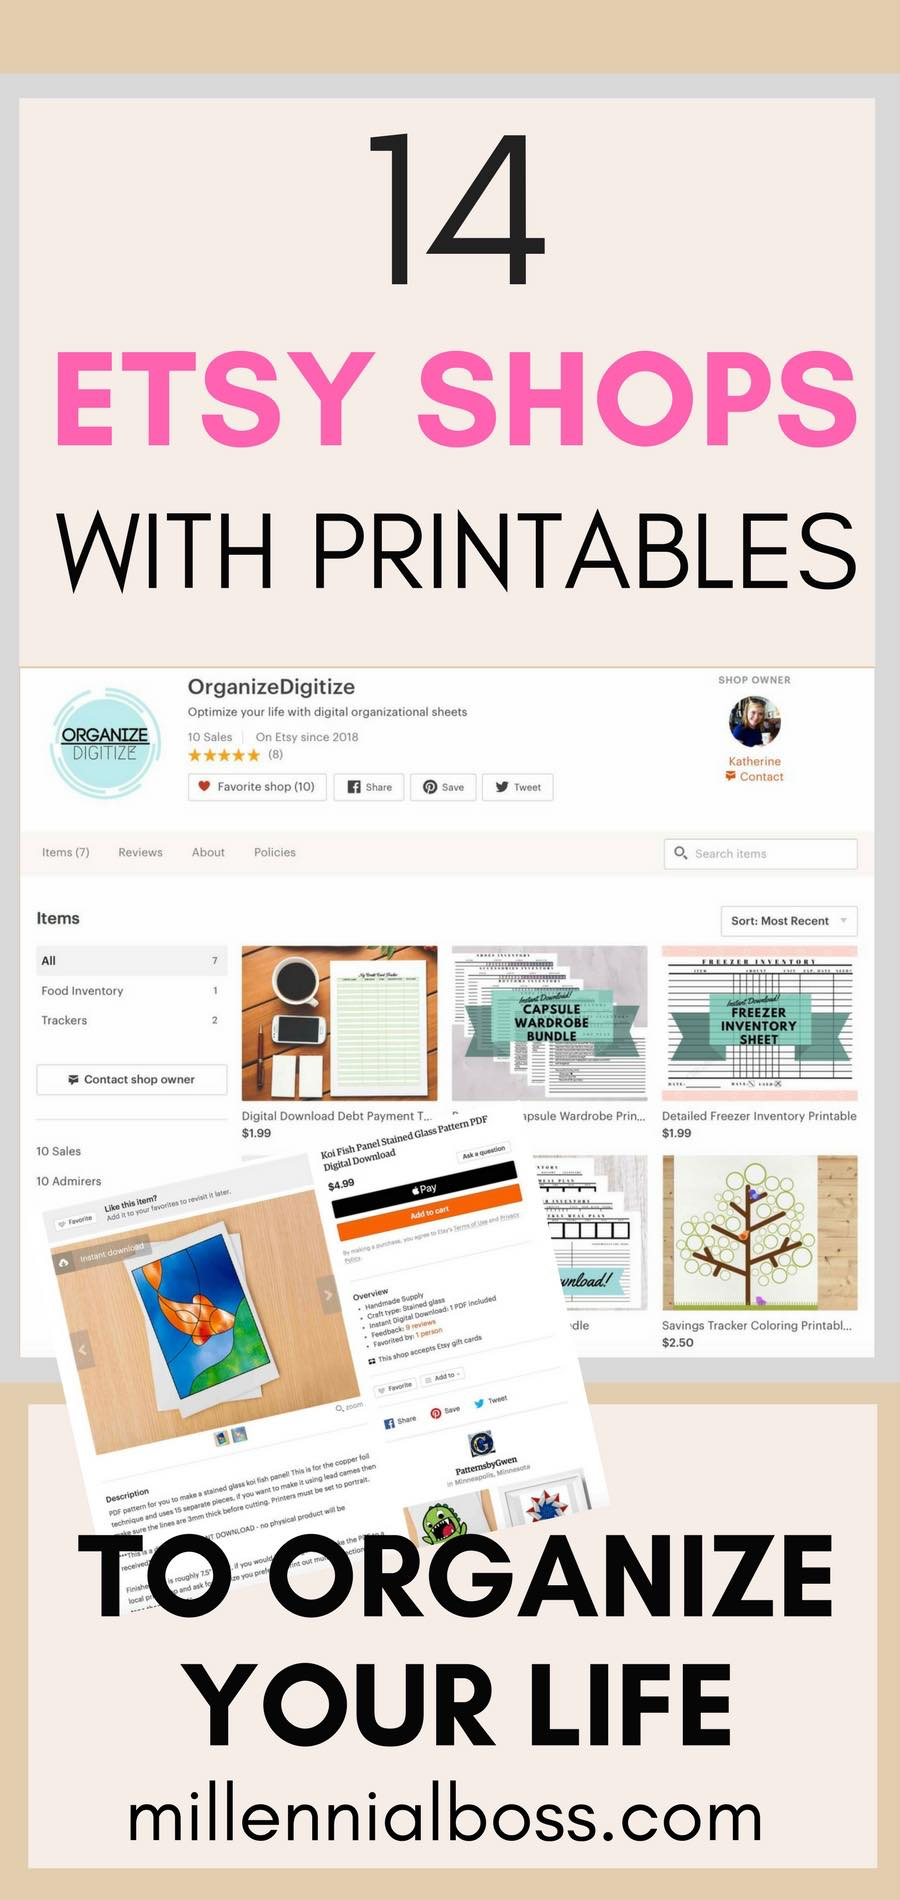 photo regarding Etsy Printables identified as 14 Wonderful Etsy Printable Retailers towards our Etsy Mastermind